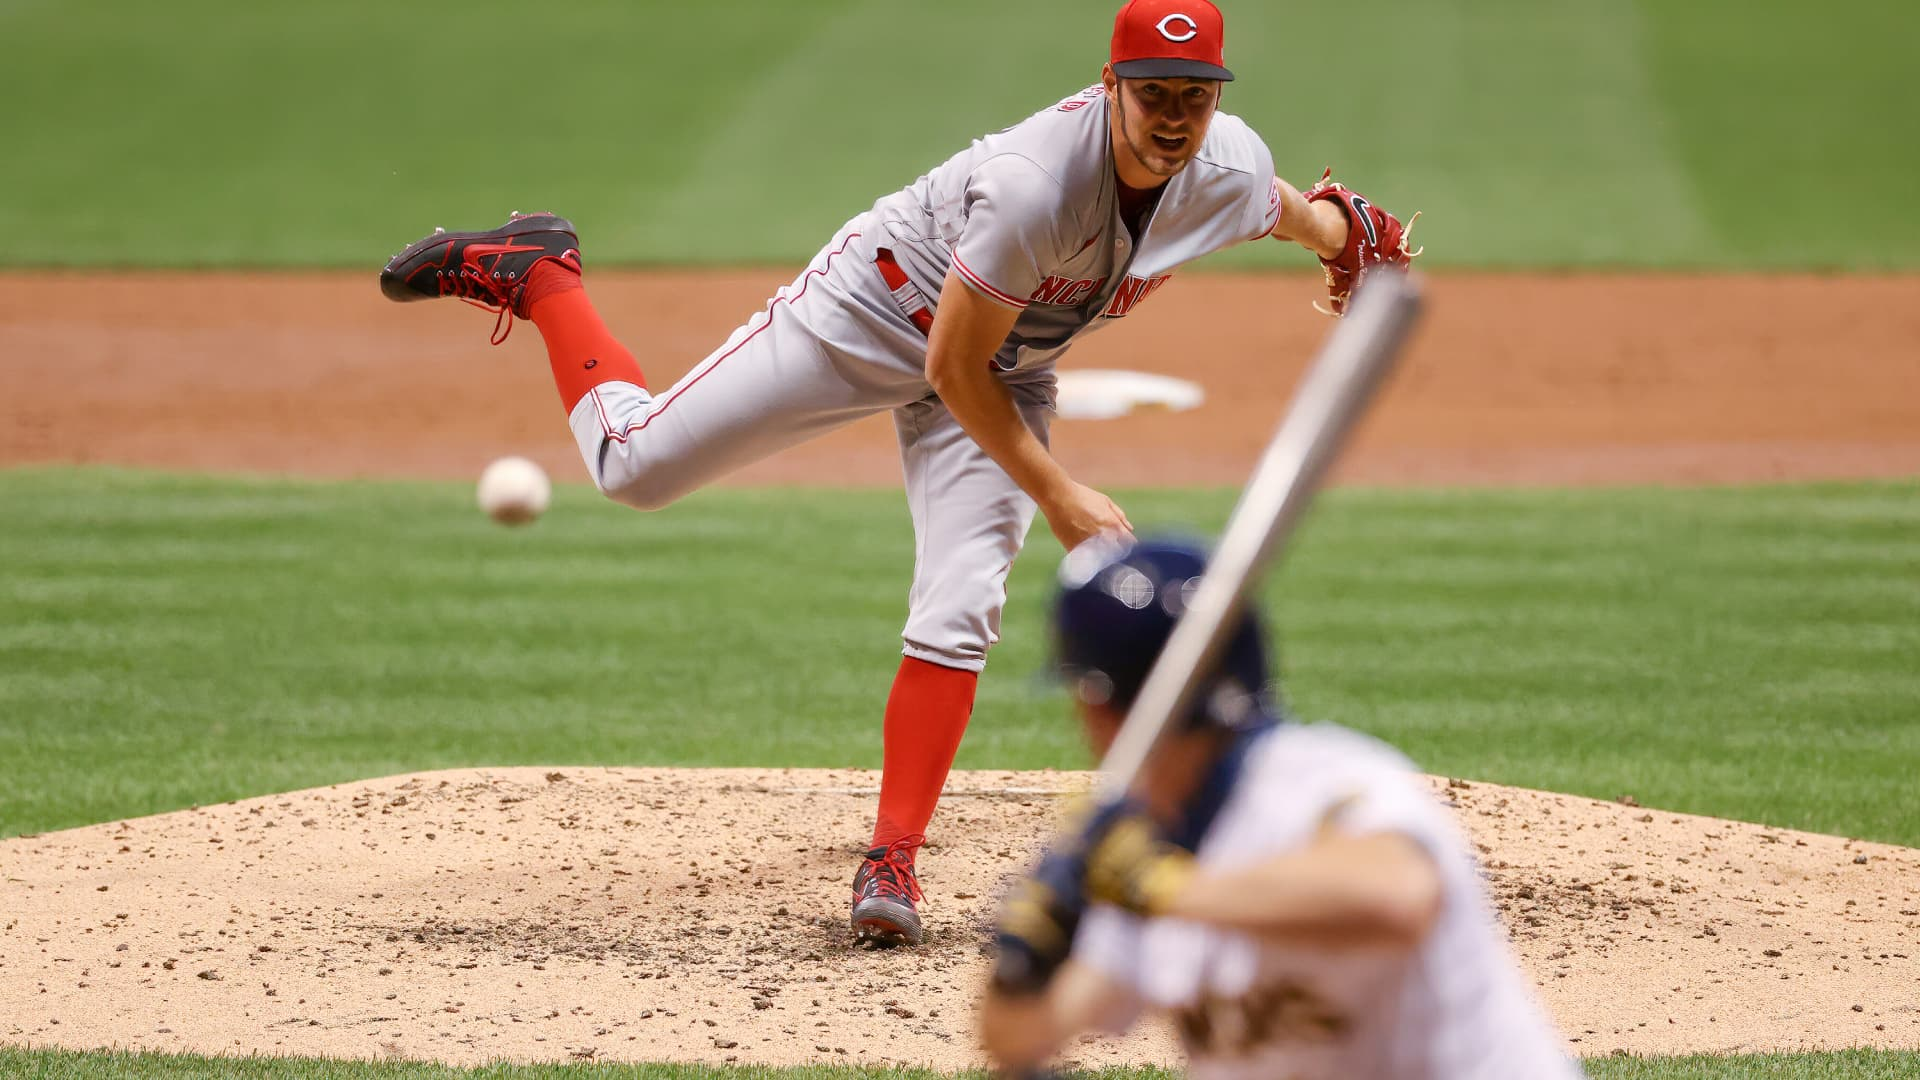 Trevor Bauer #27 of the Cincinnati Reds pitches in the third inning against the Milwaukee Brewers at Miller Park on August 07, 2020 in Milwaukee, Wisconsin.